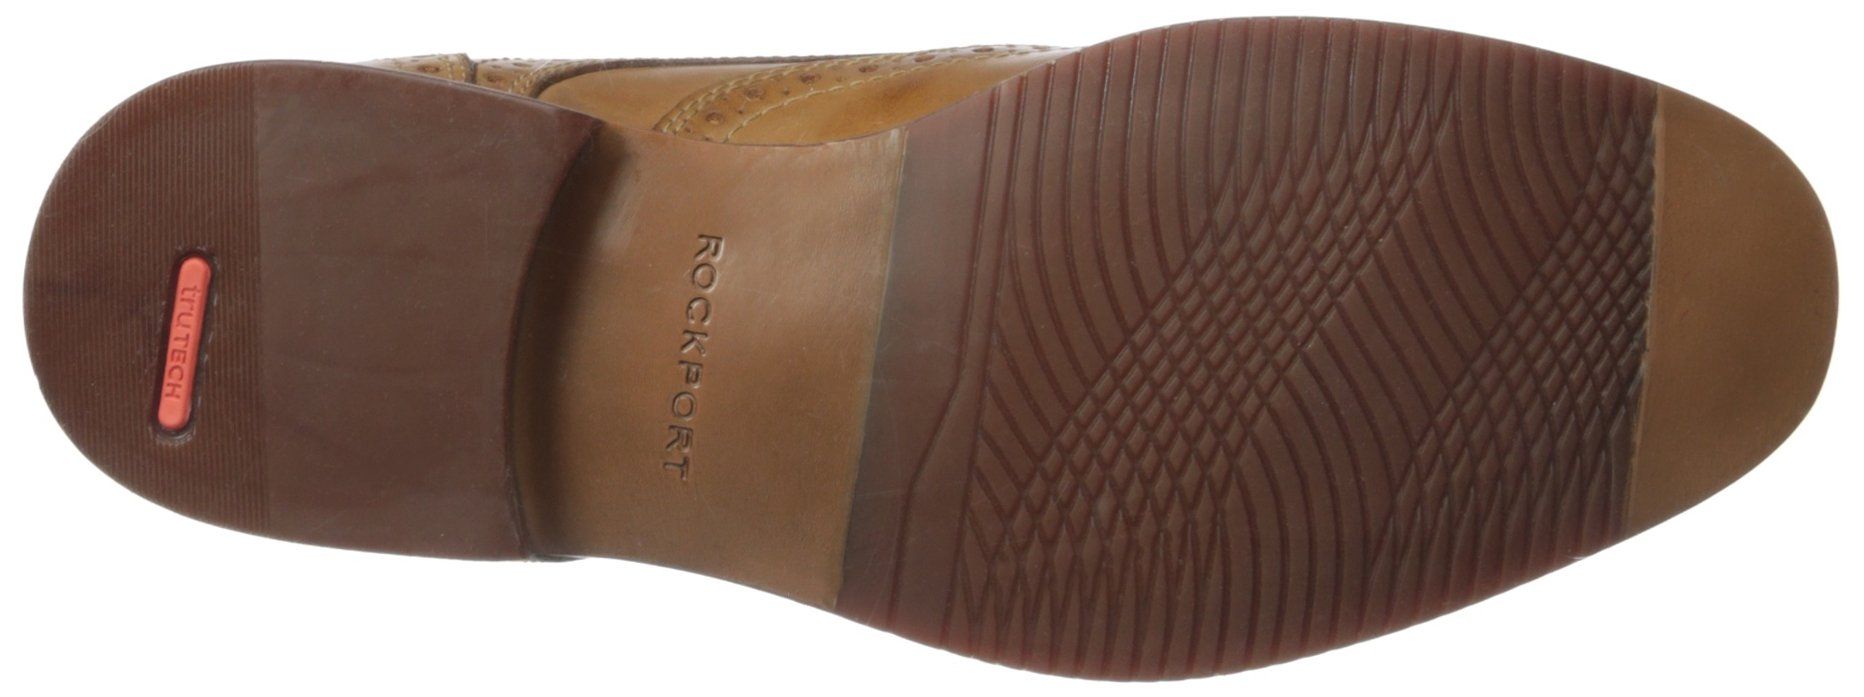 Rockport Men's Style Purpose Wing Tip Tan- 6.5 2w Us-6.5 W by Rockport (Image #3)